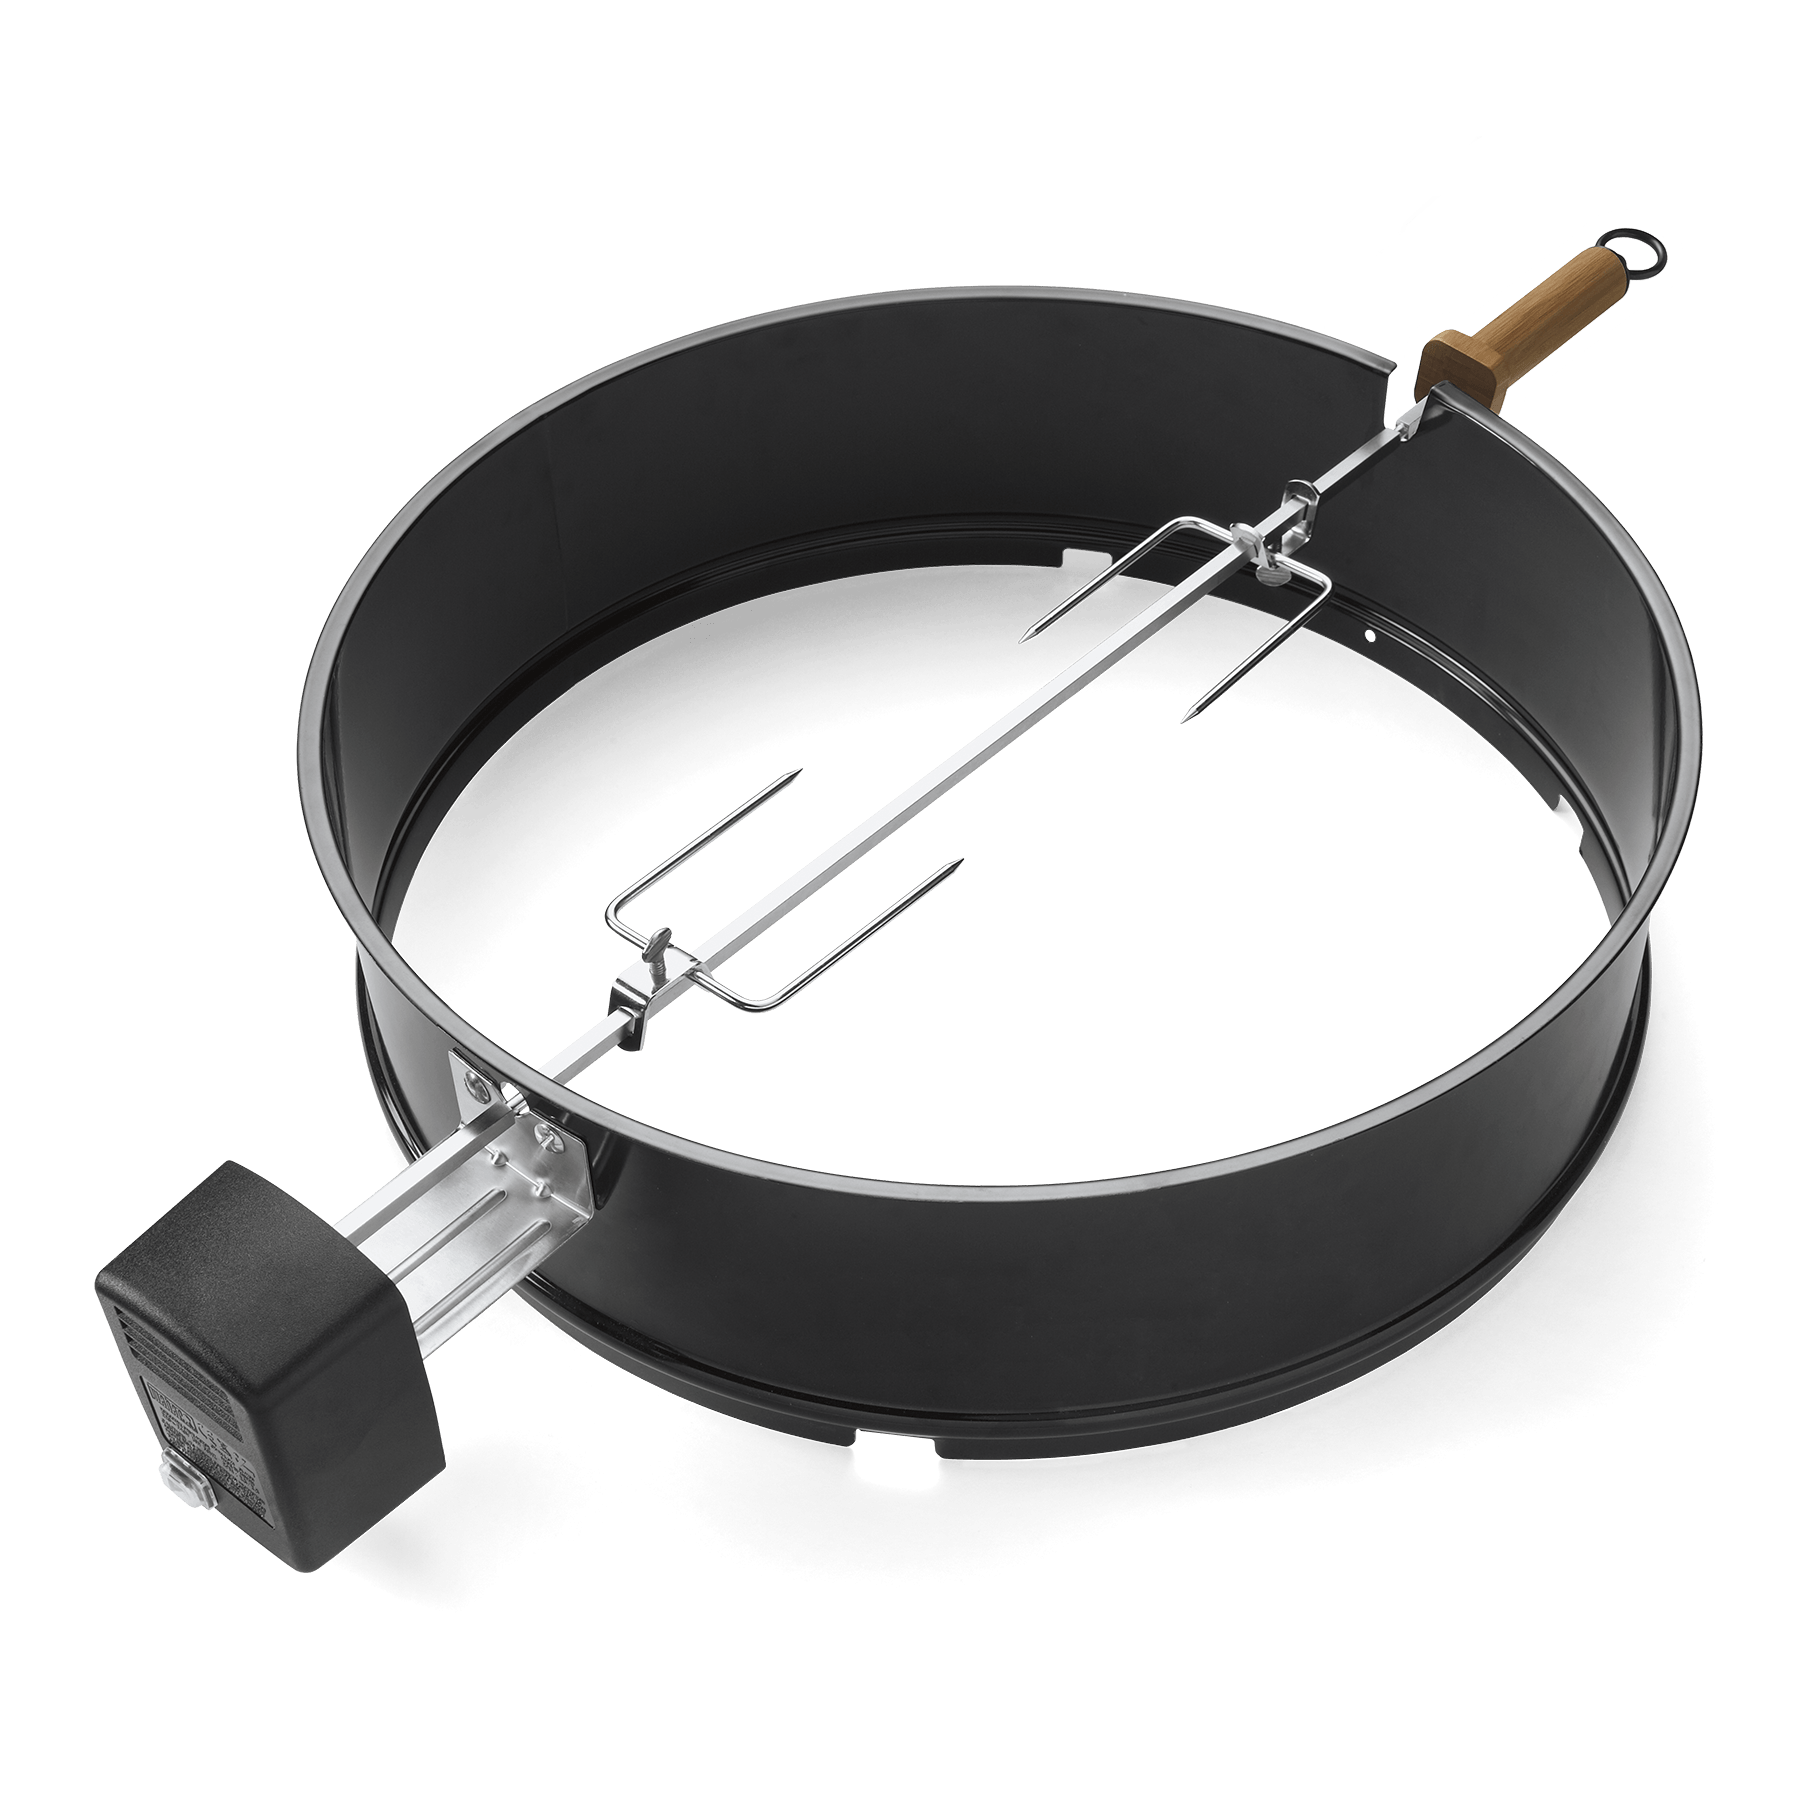 charcoal rotisserie 22 accessory weber grills